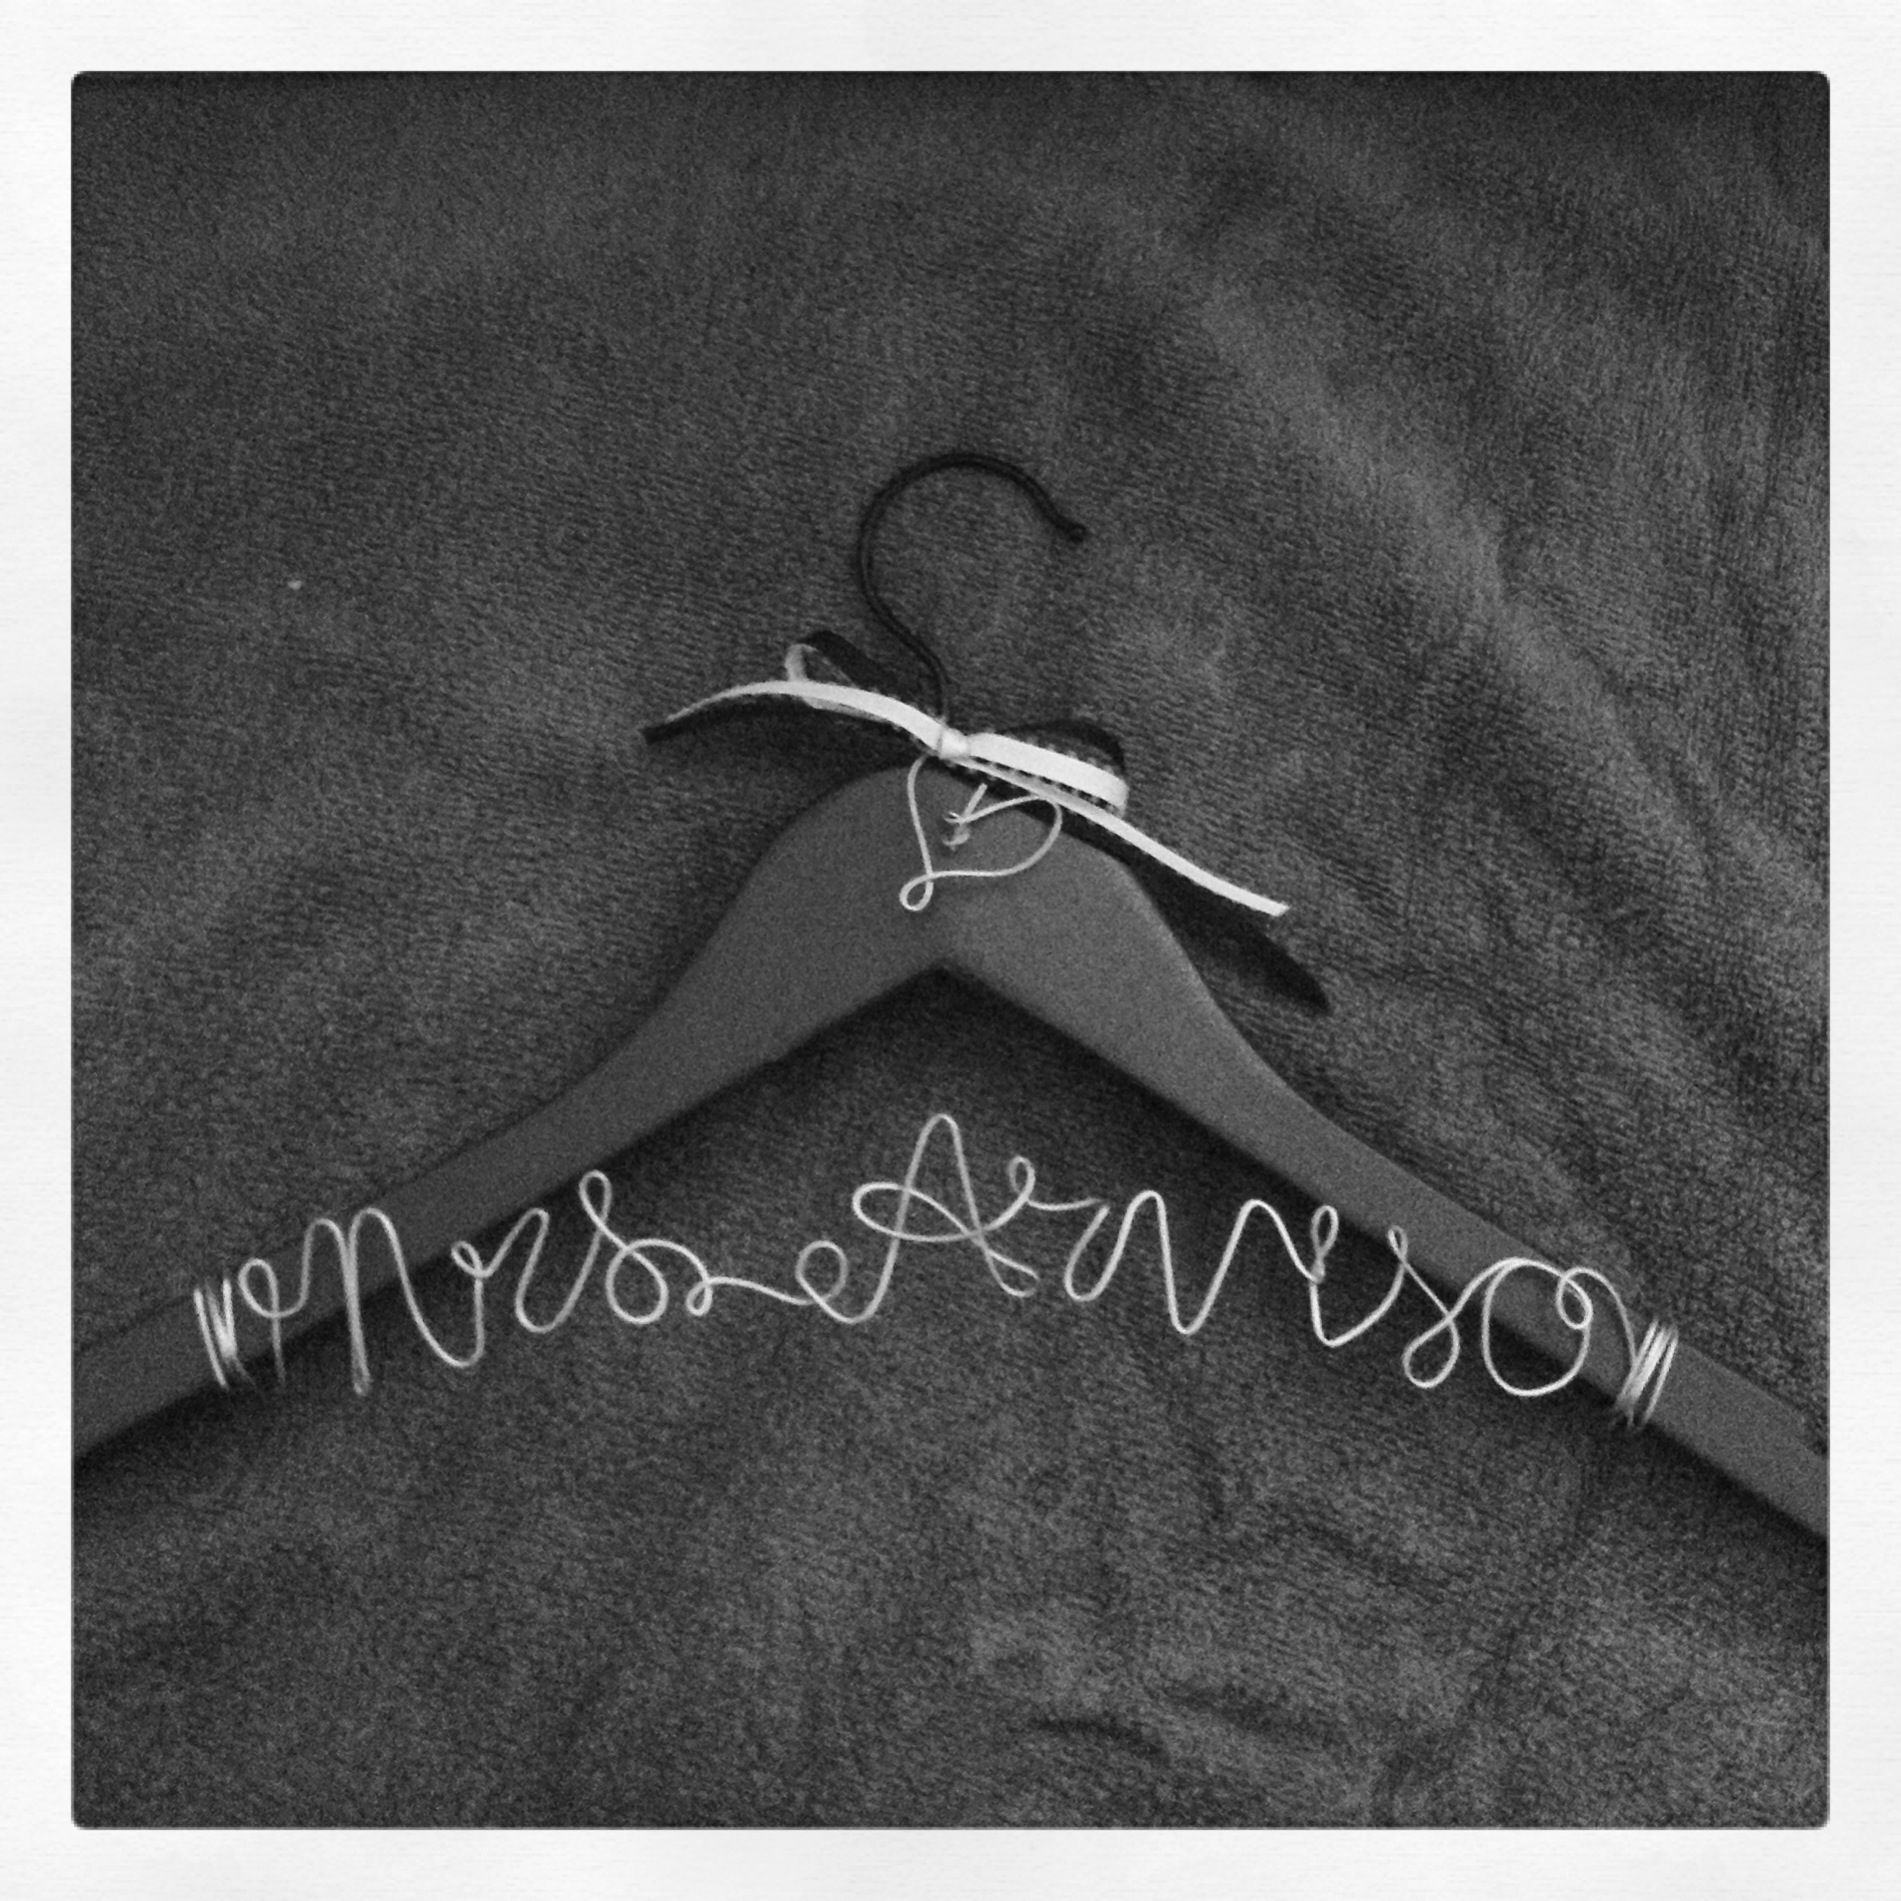 Wedding wire name hangers. Lowes: 5$ 18 gauge galvanize wire ...